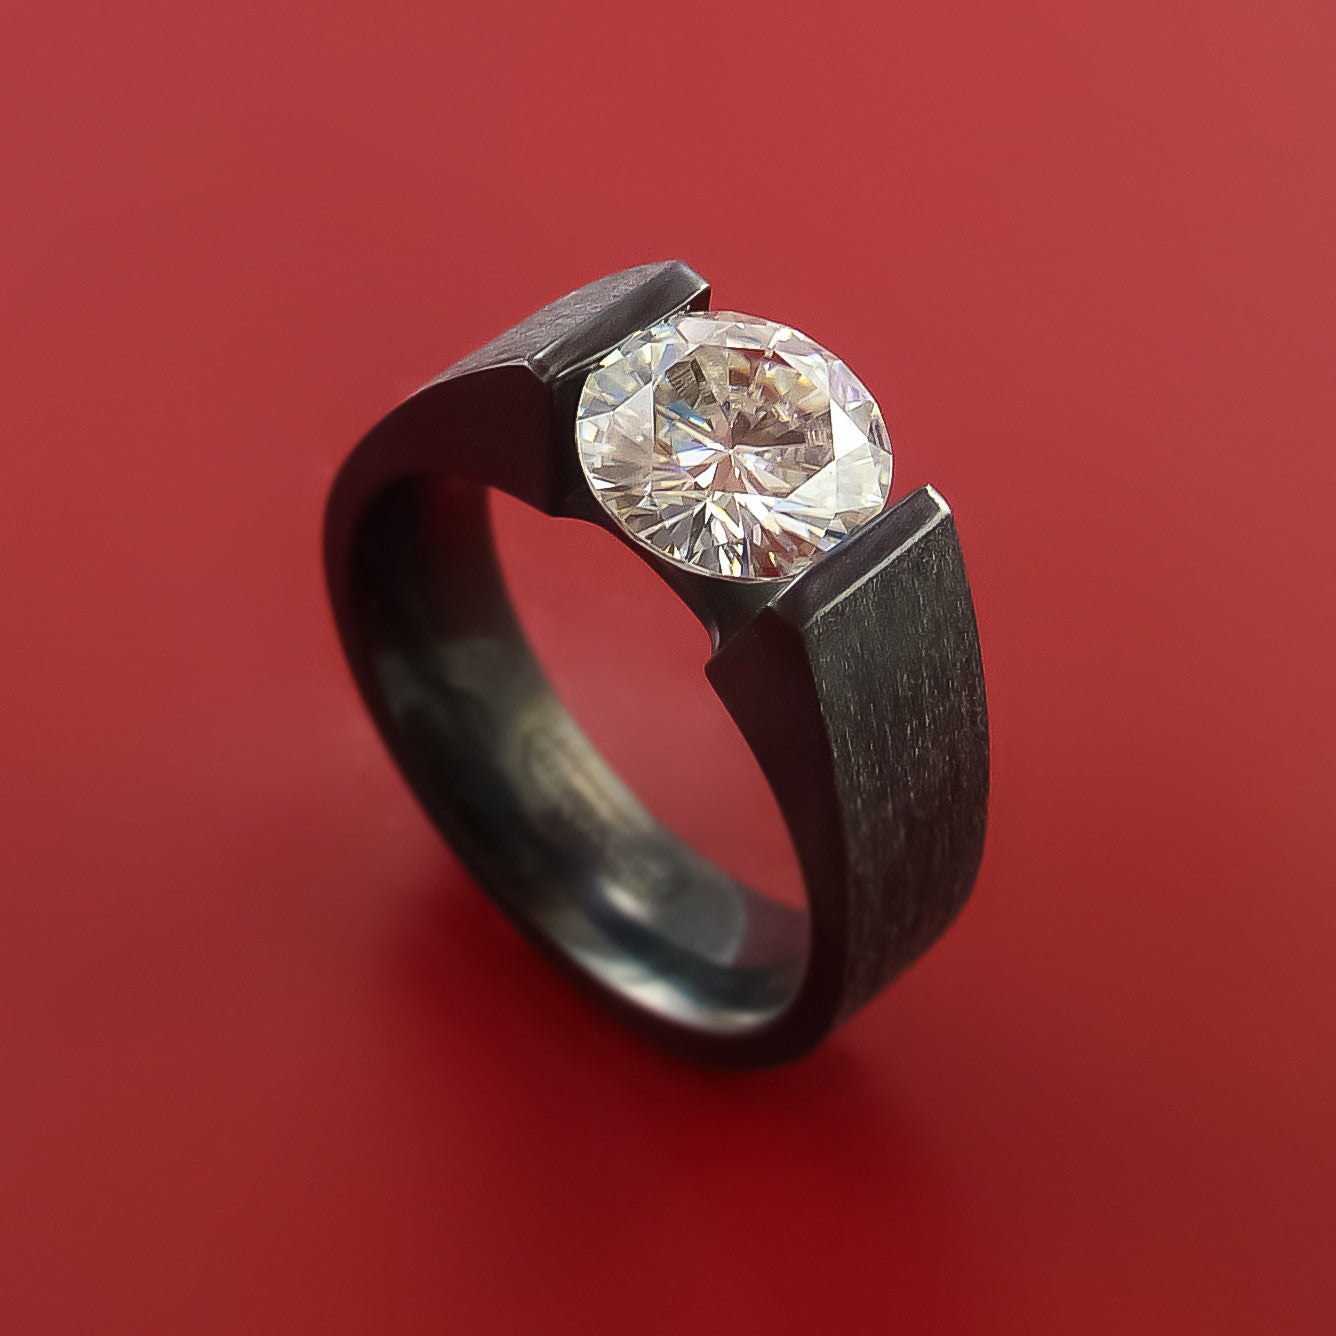 Black Zirconium Ring Tension Setting Band Made To Any Size